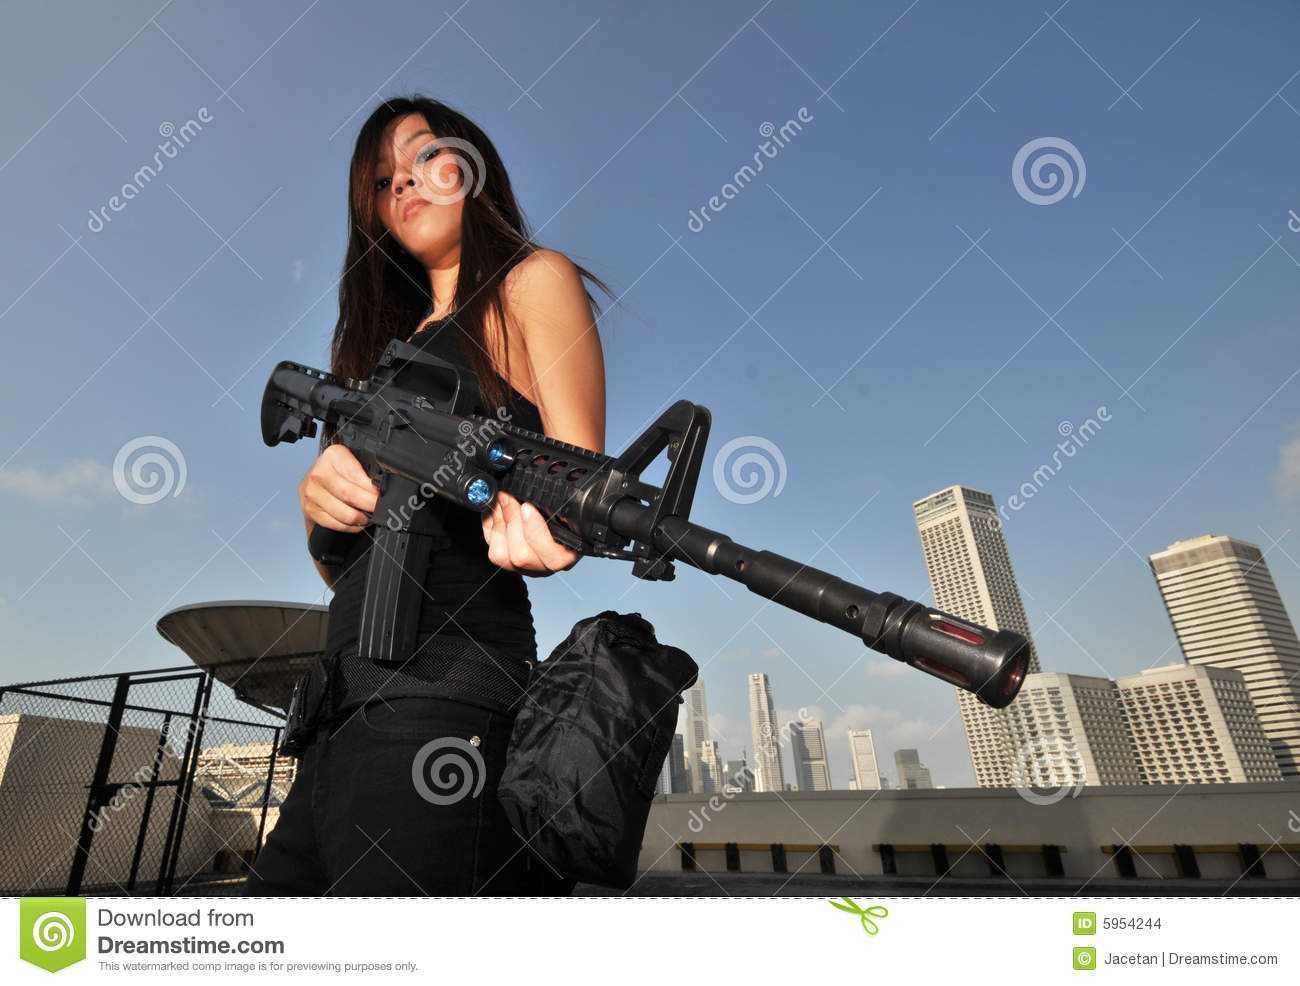 China Beautiful Girl Wallpaper Asian Female Holding A Mean Rifle Overlooking City Stock